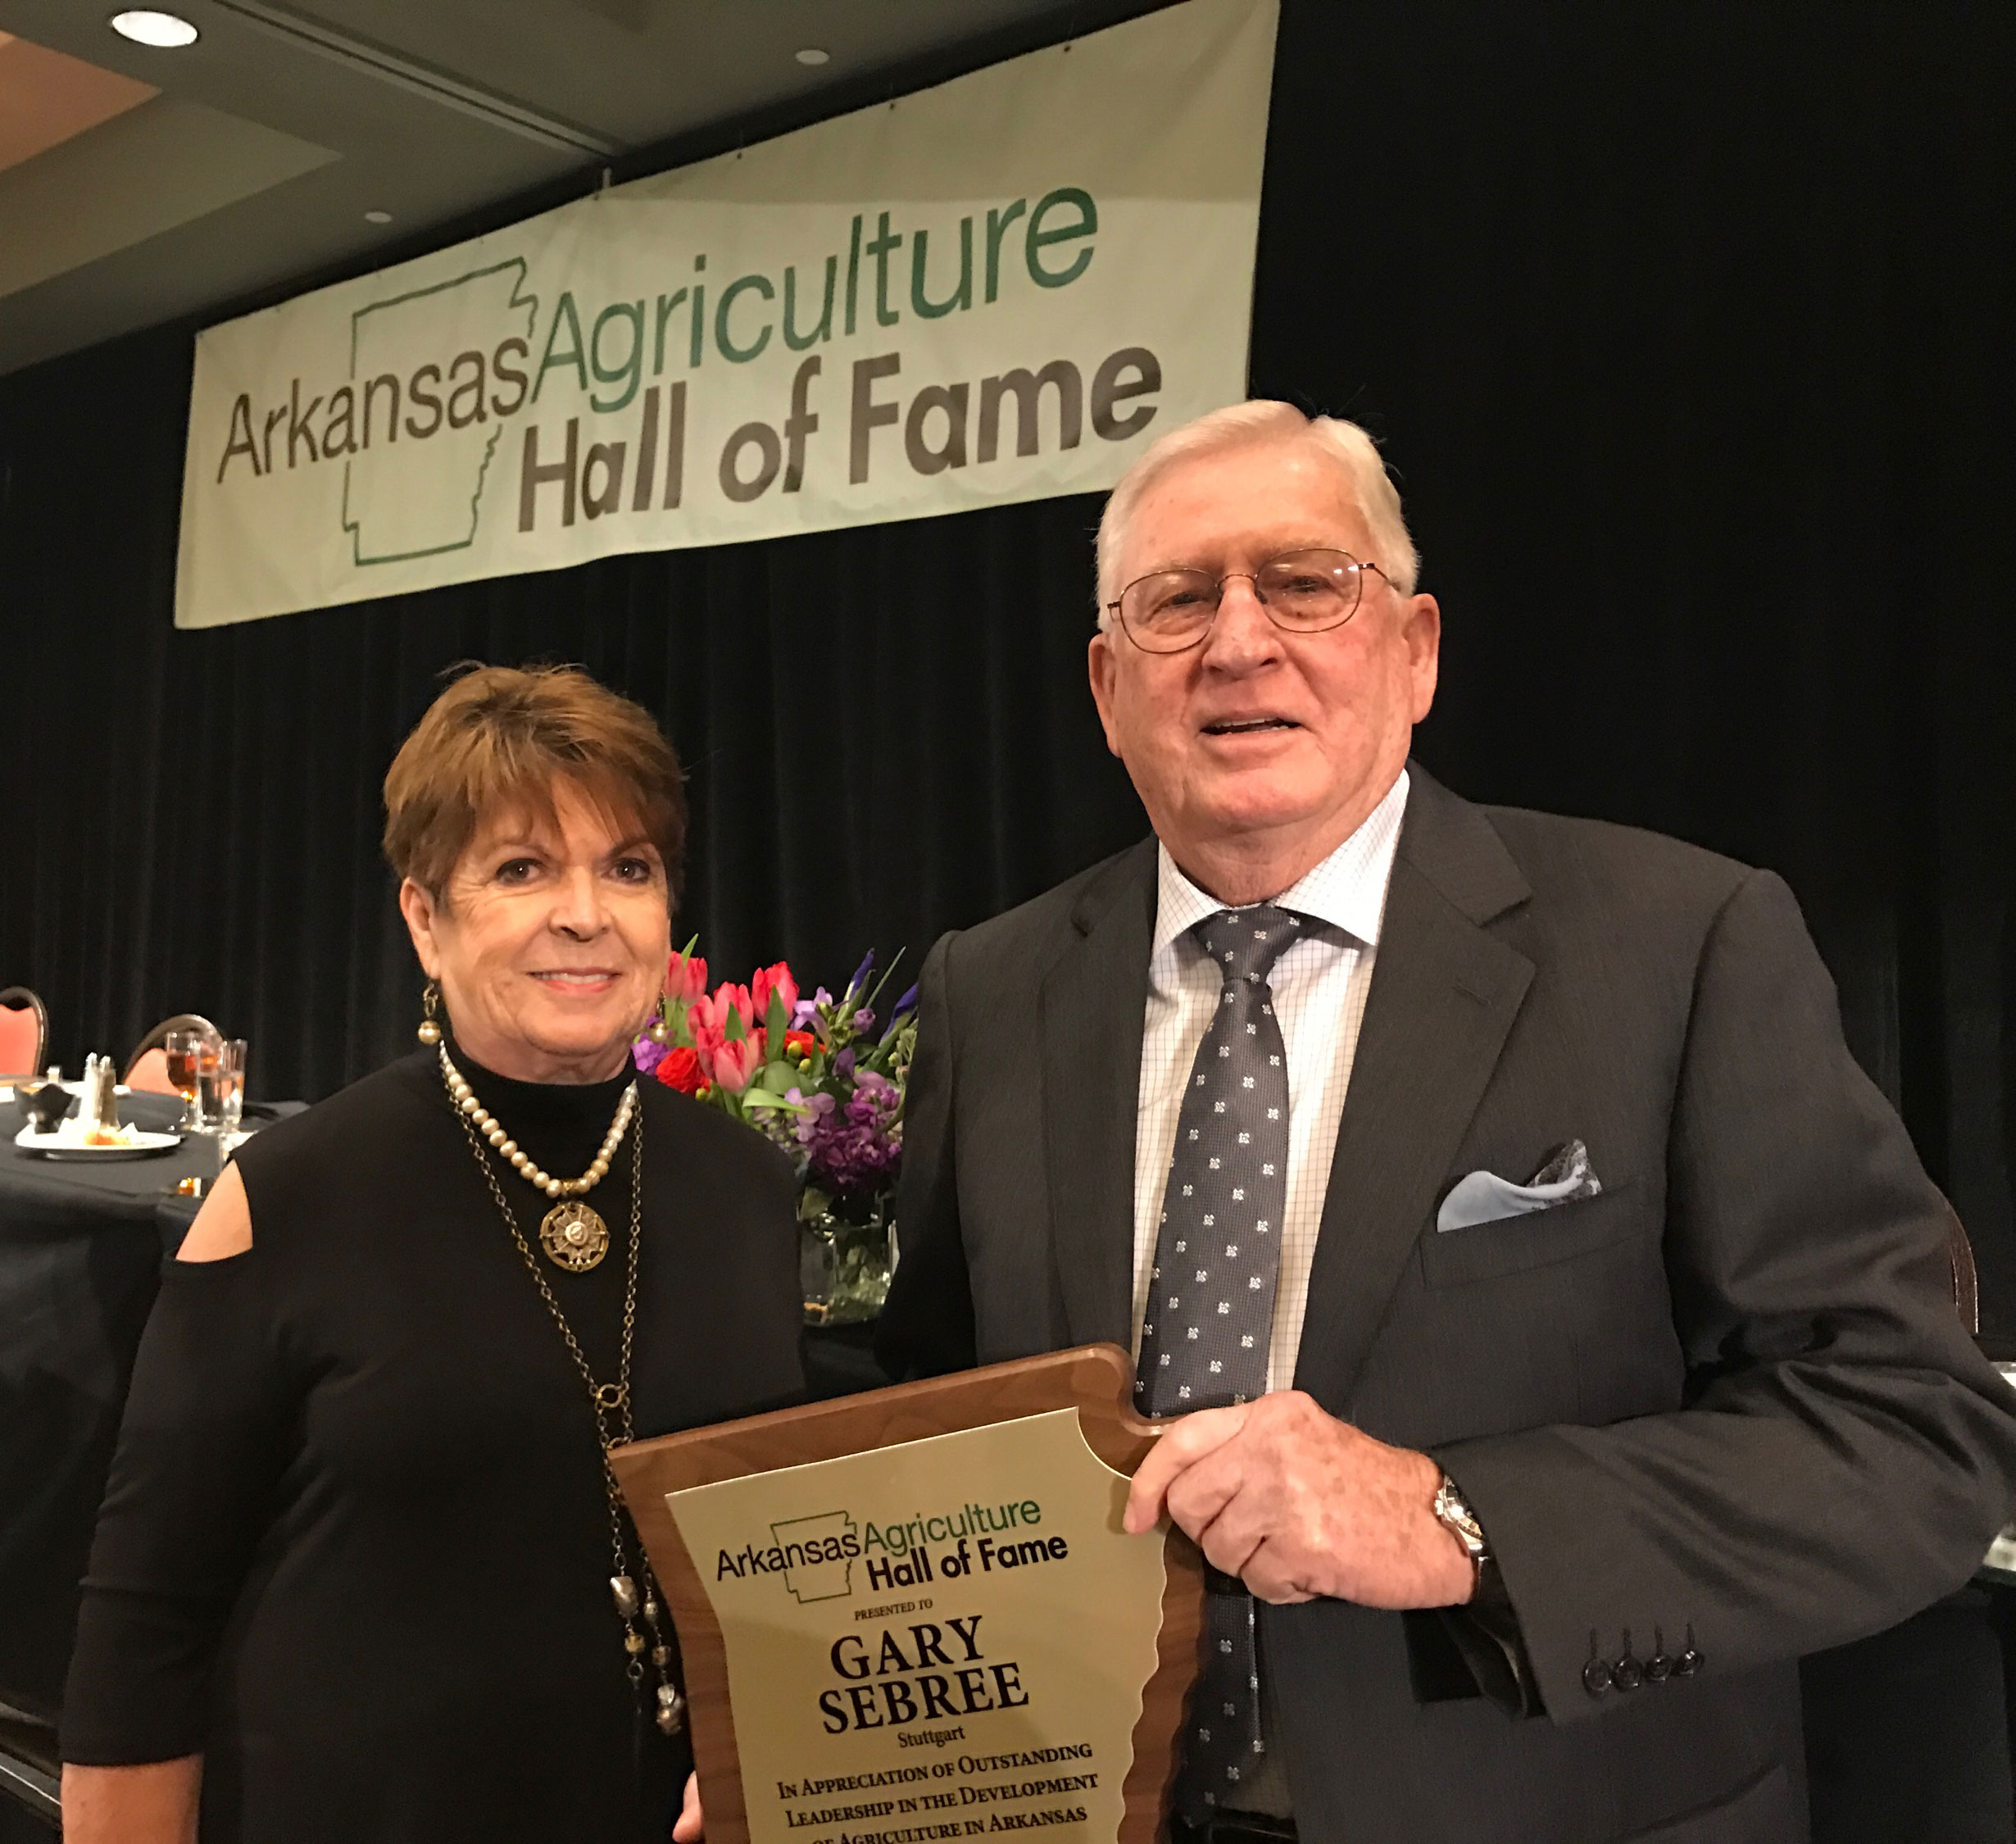 Gary-Sebree-holds his Ag-Hall-of-Fame plaque